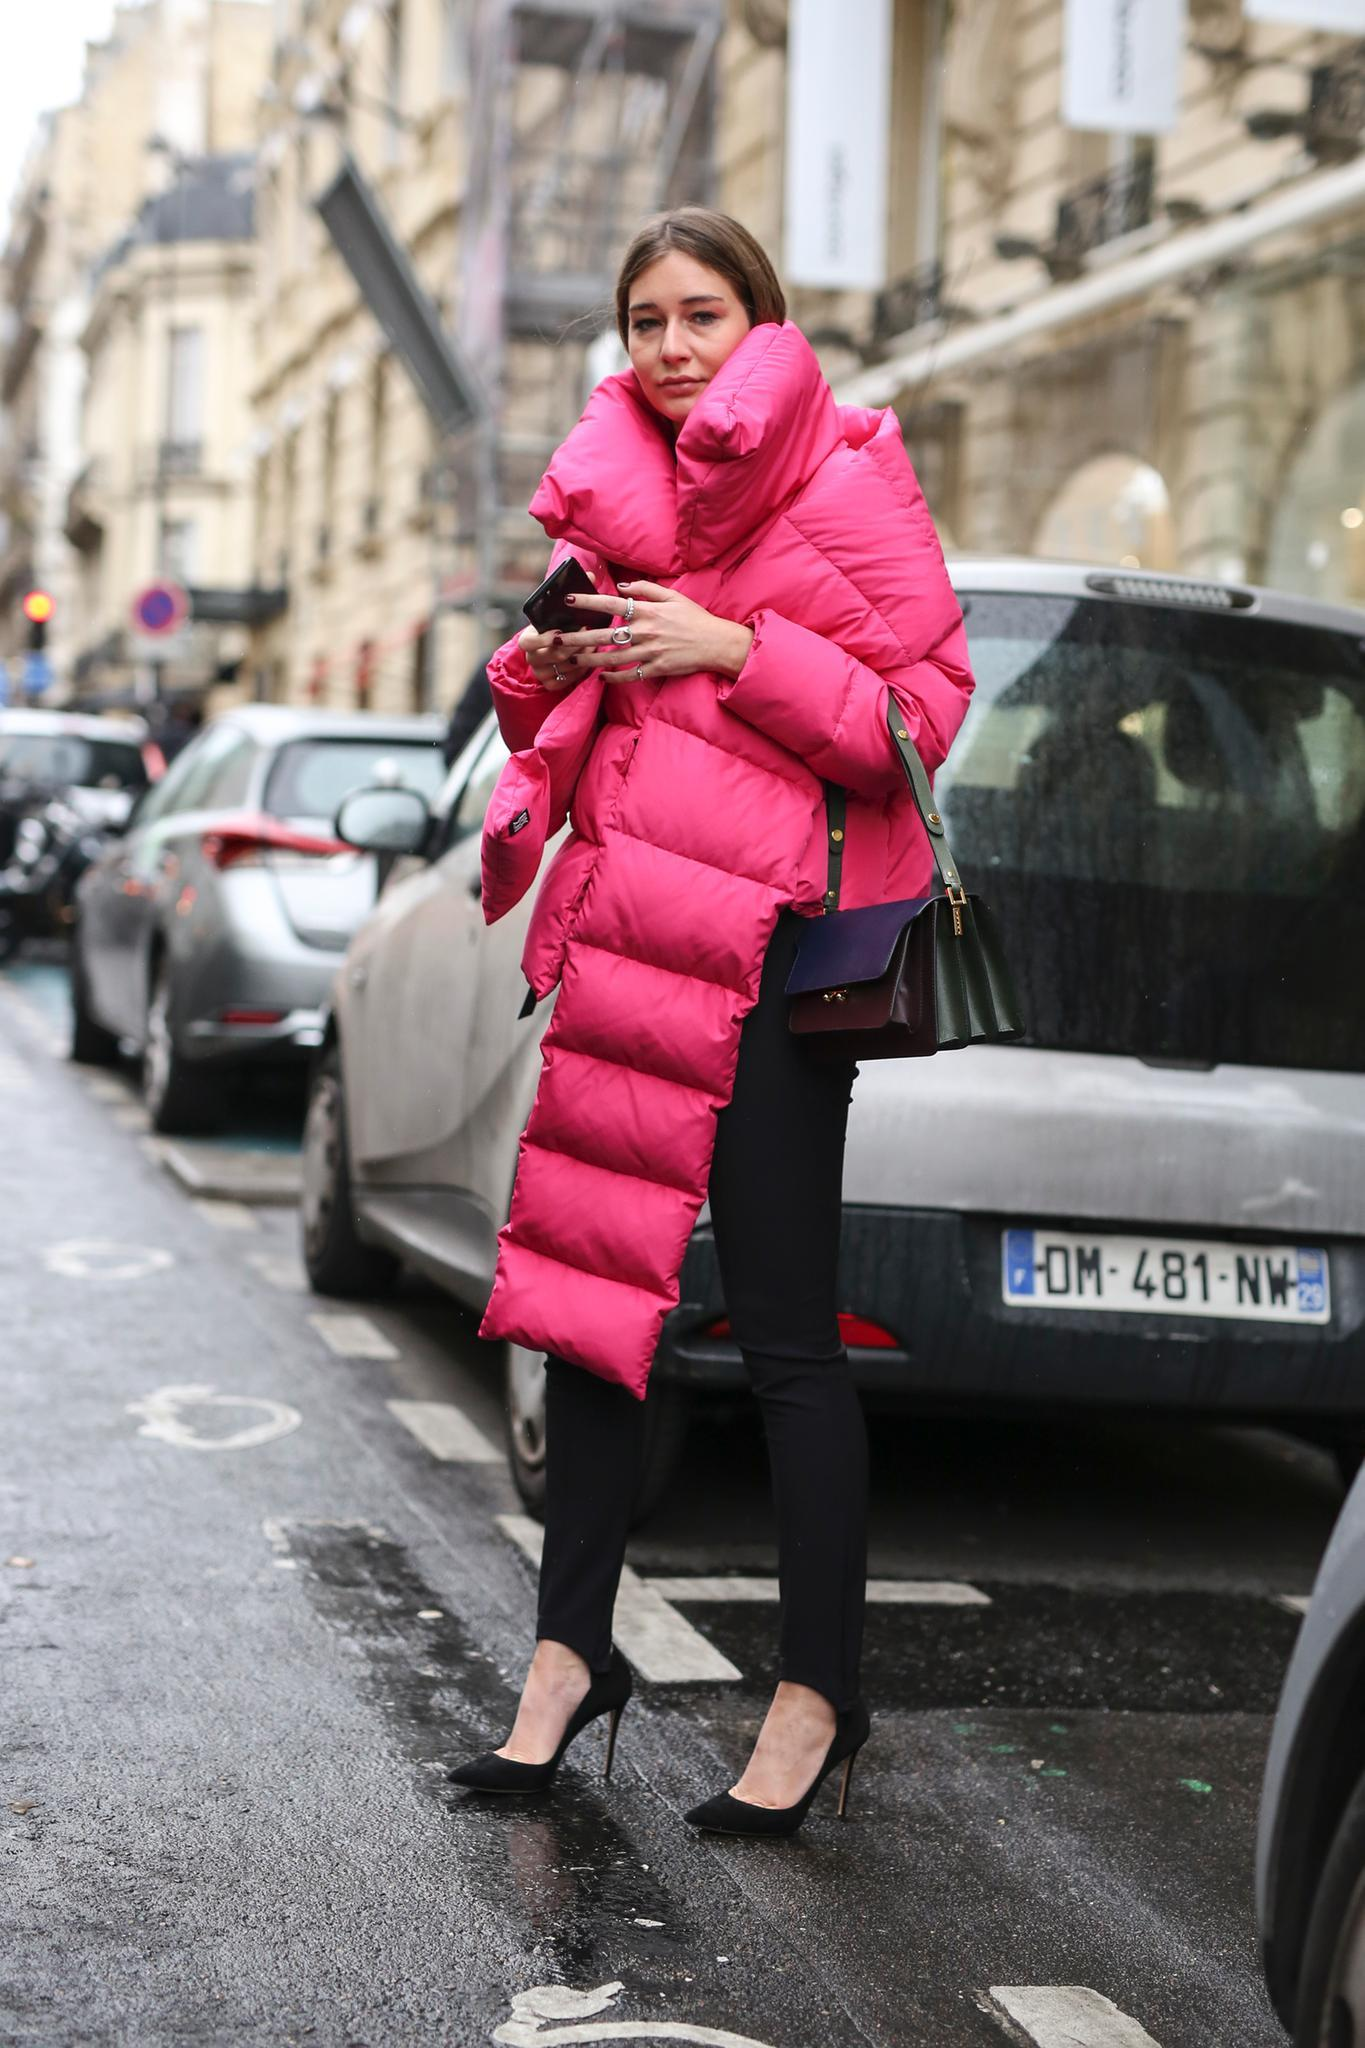 Steppjacke in Pink als Streetstyle